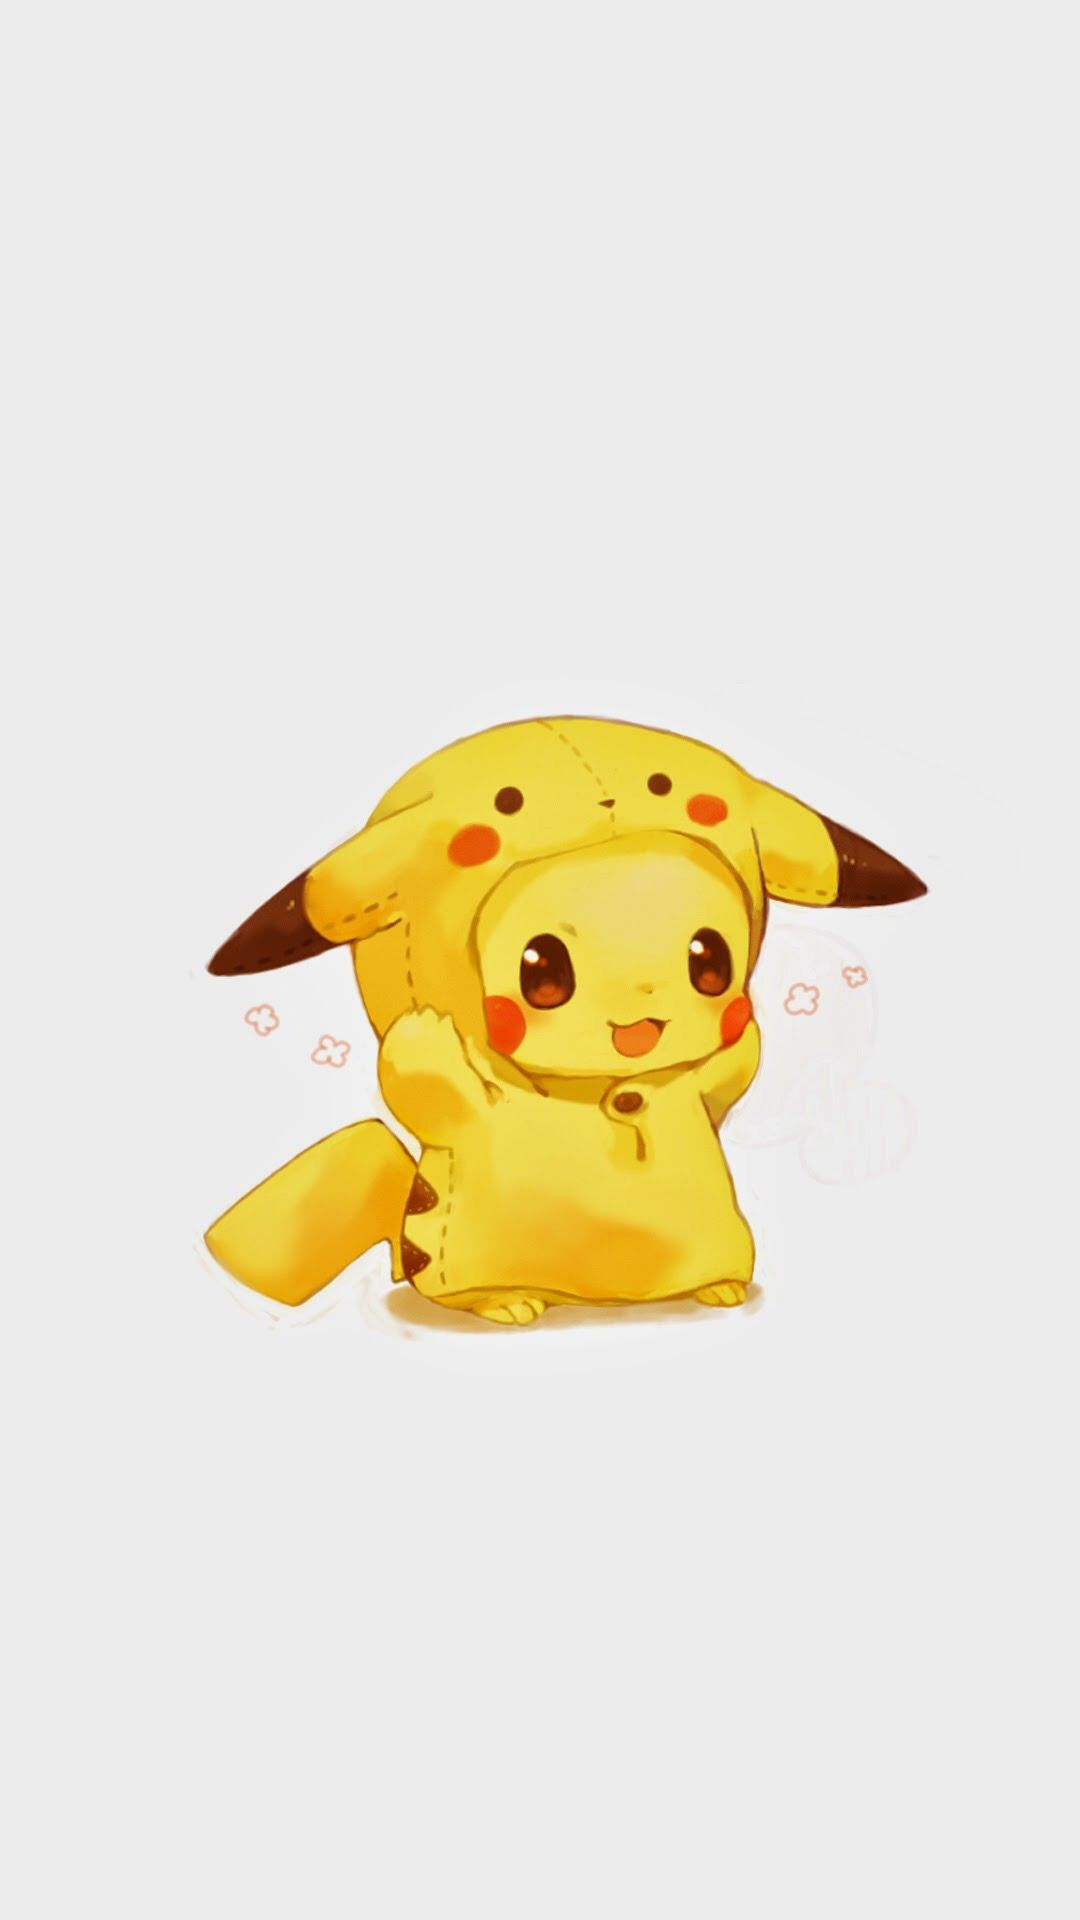 pikachu phone wallpapers top free